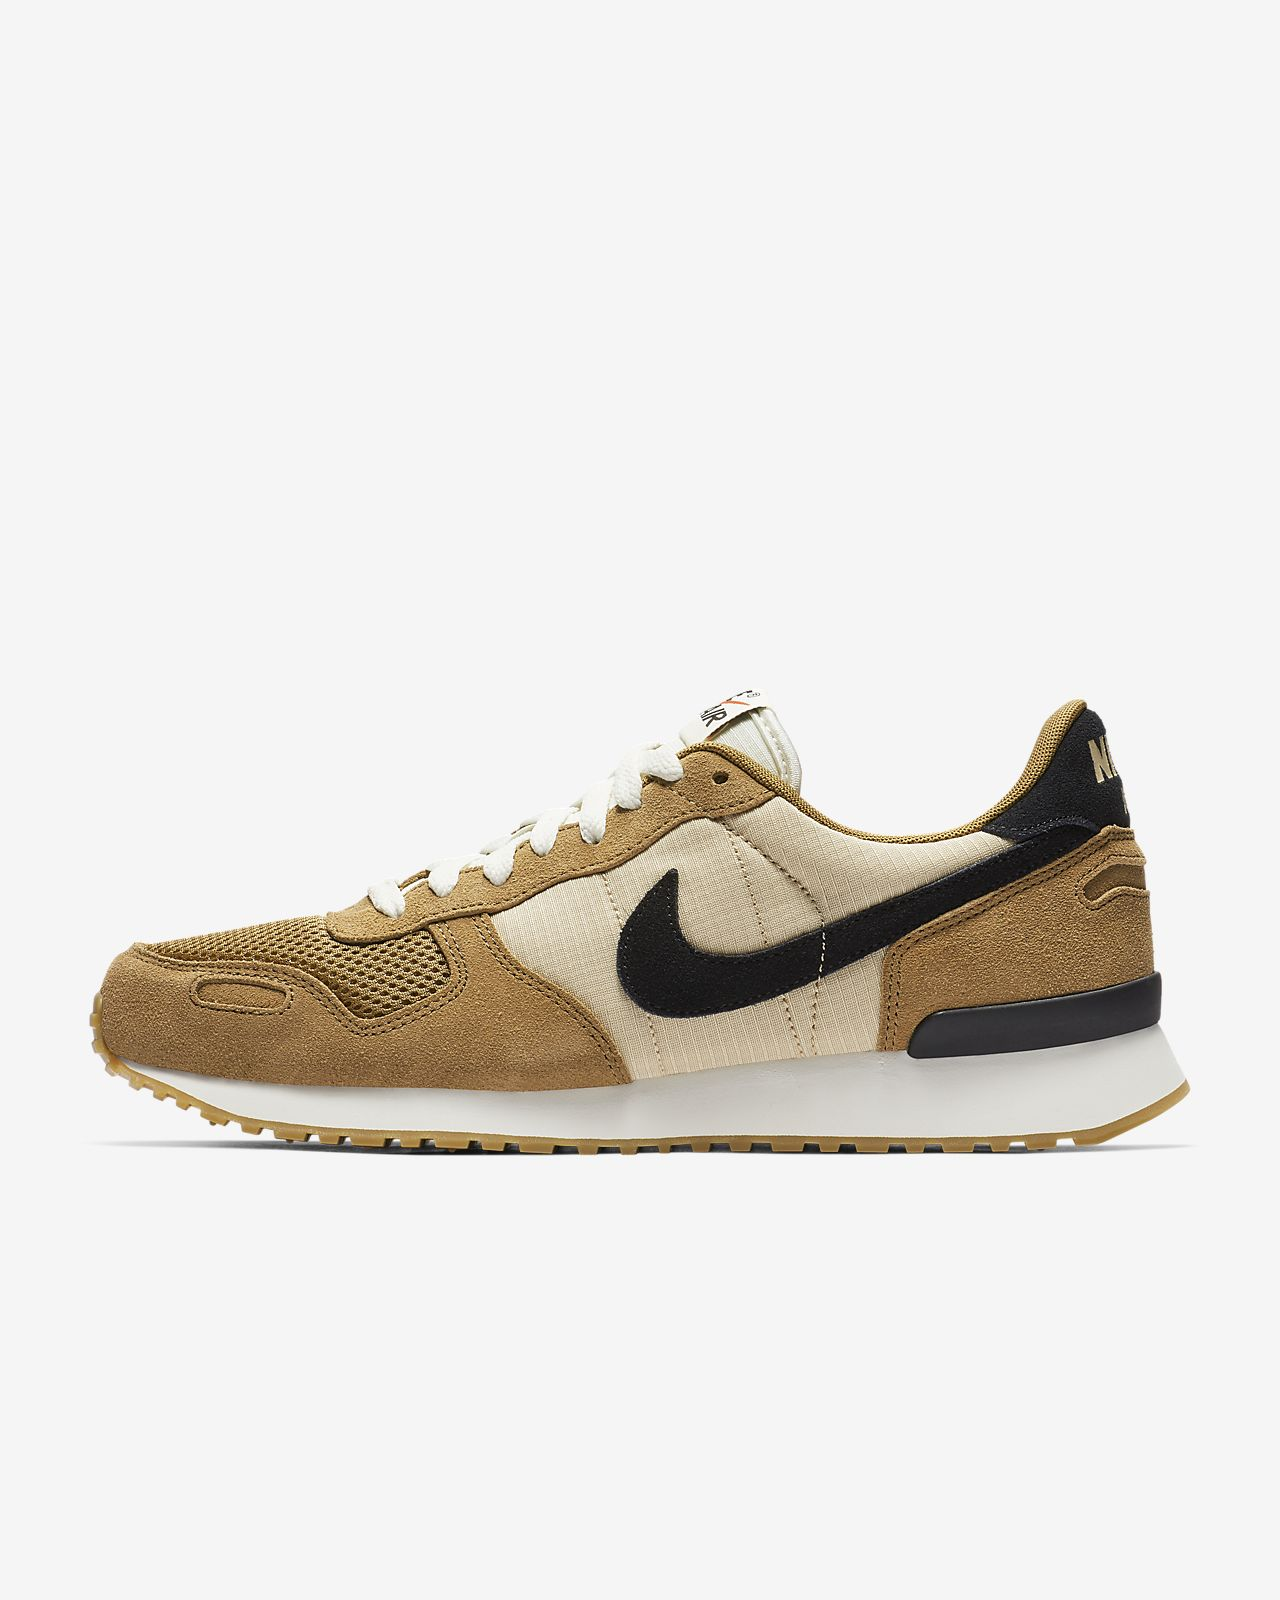 finest selection 9c8cc 14689 Low Resolution Nike Air Vortex Herrenschuh Nike Air Vortex Herrenschuh